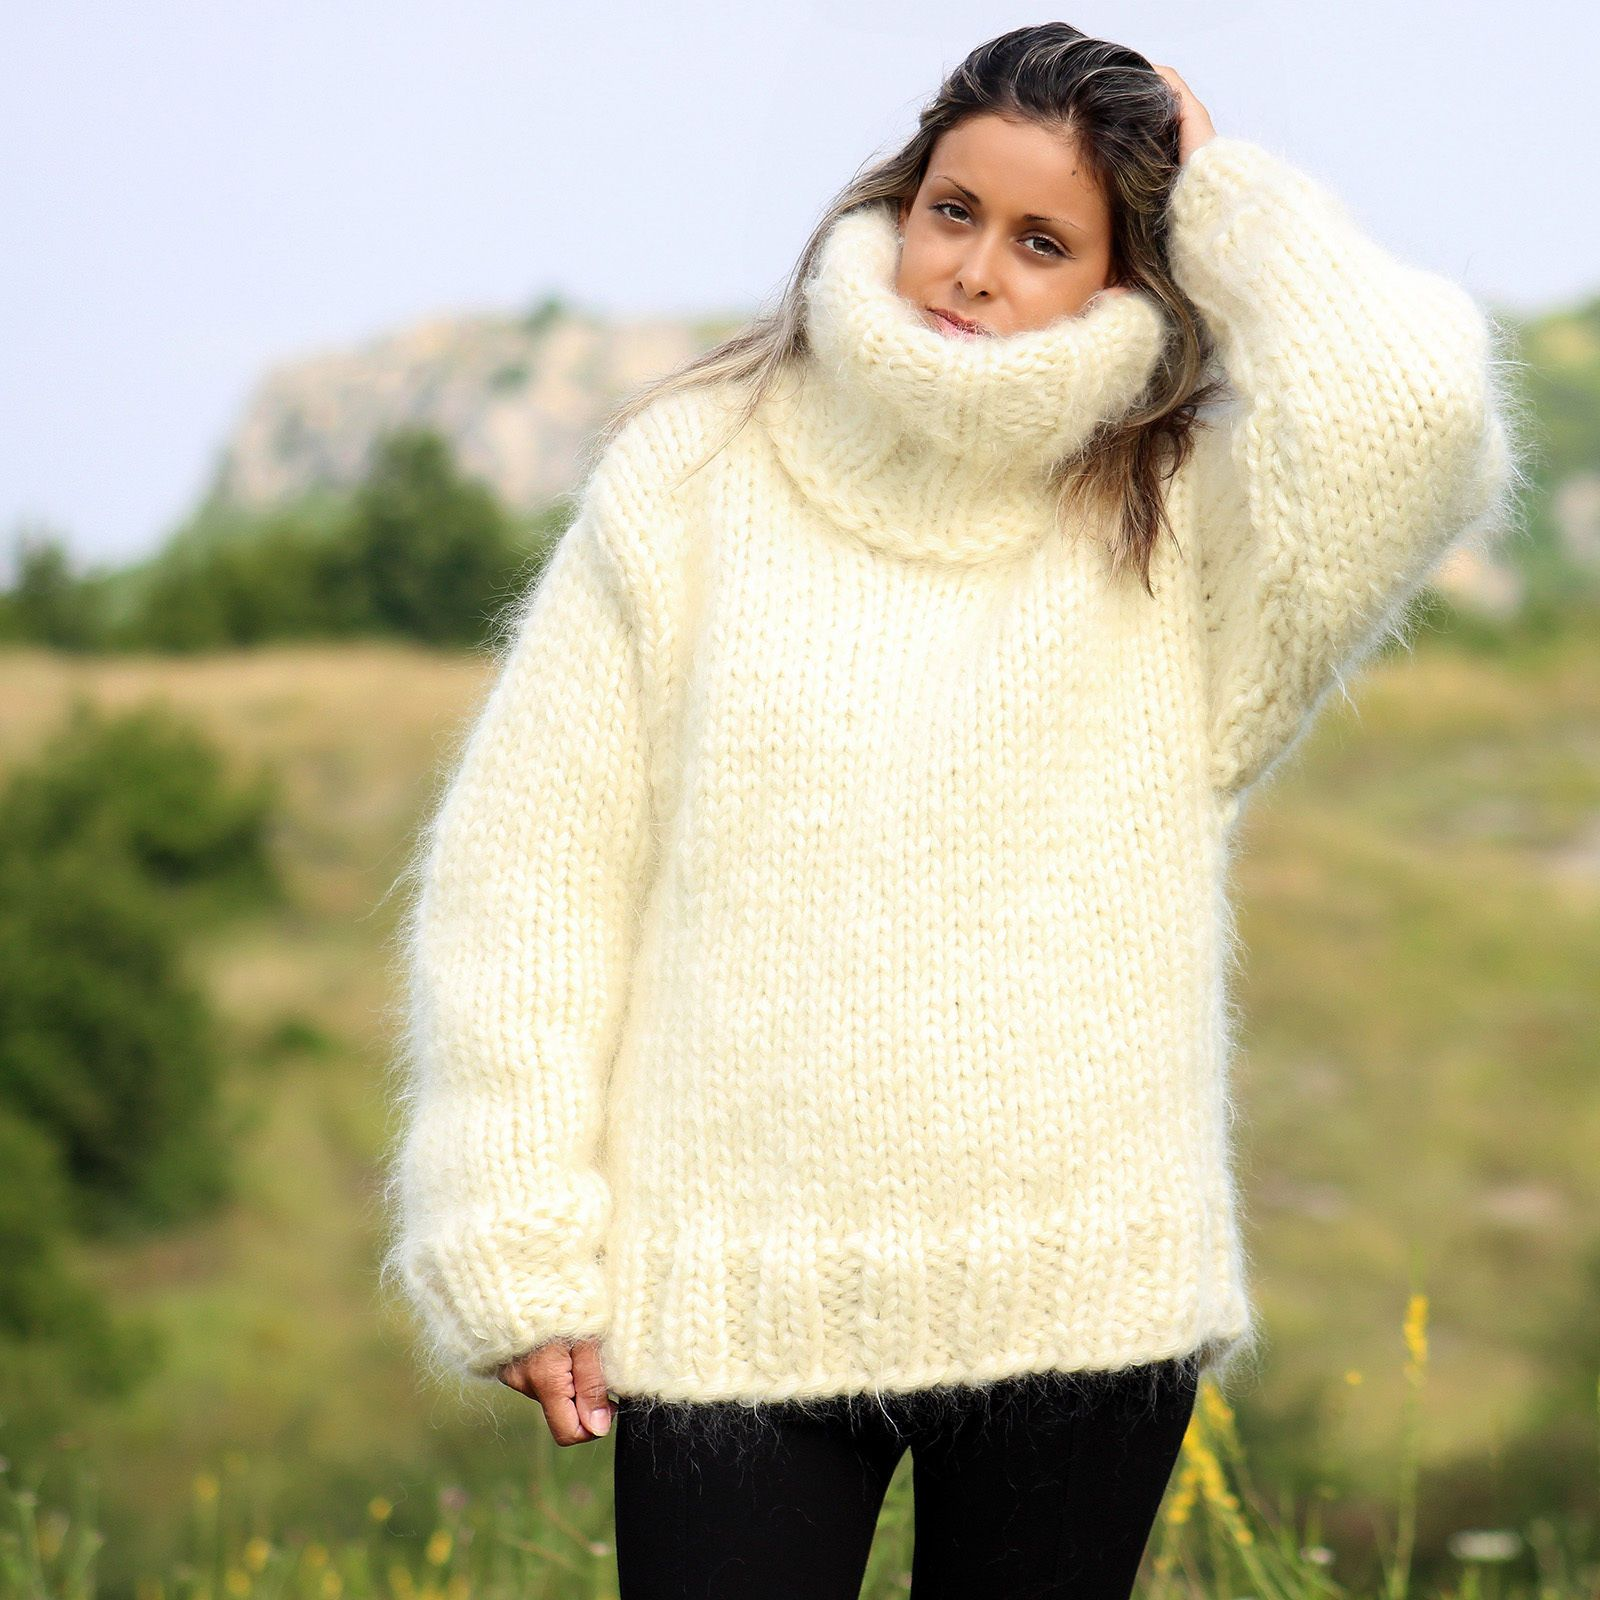 10 Strands WHITE Hand Knitted Mohair Sweater FUZZY Pullover by ...